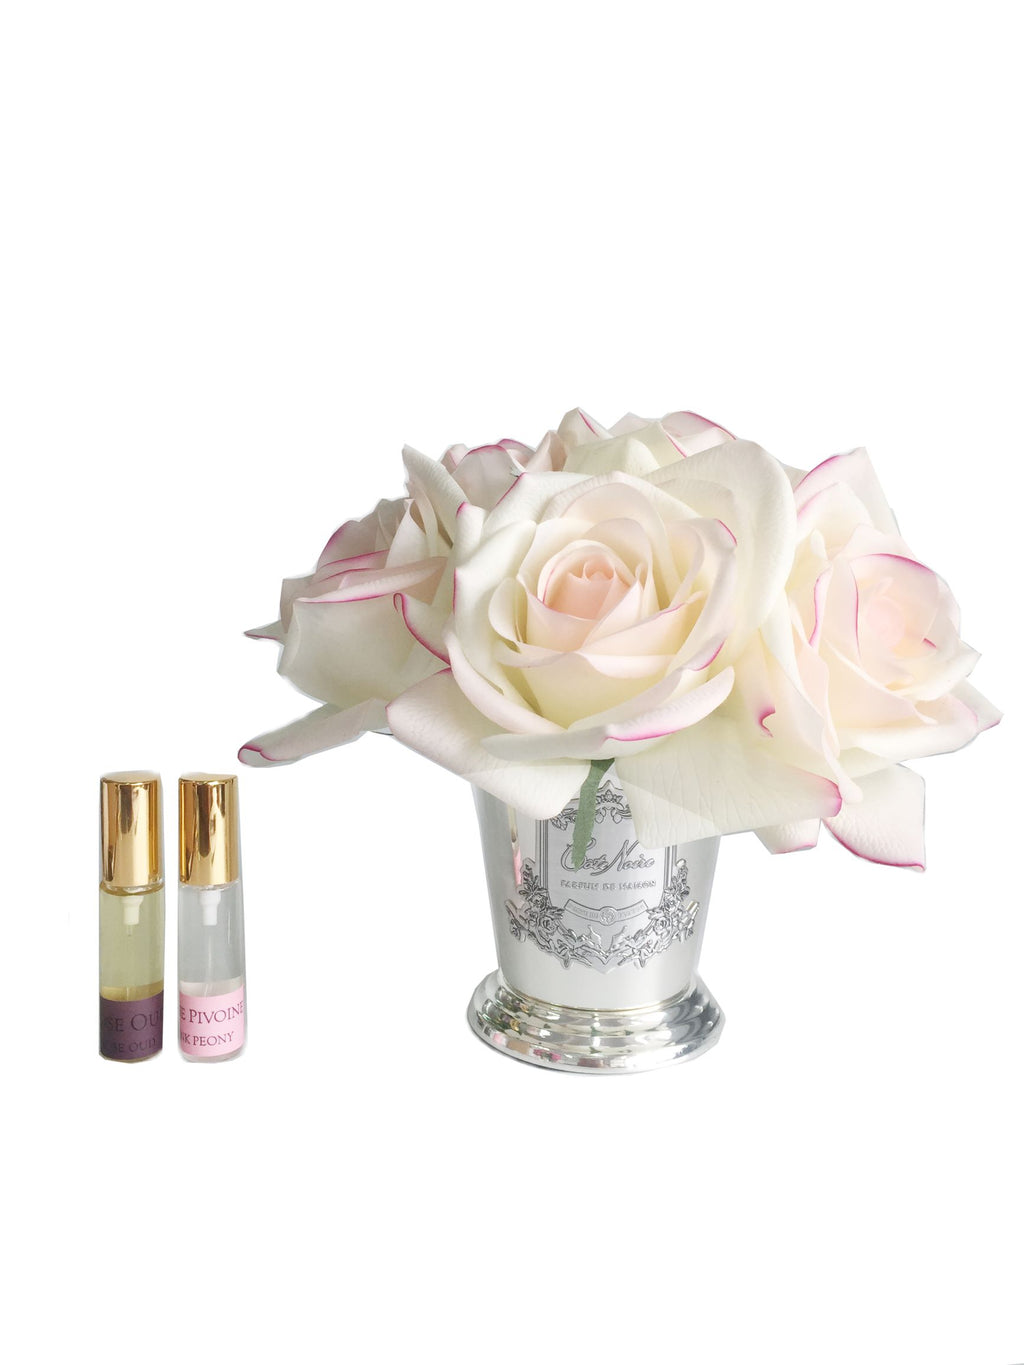 Blush 7 Rose bouquet diffuser in Silver Vase